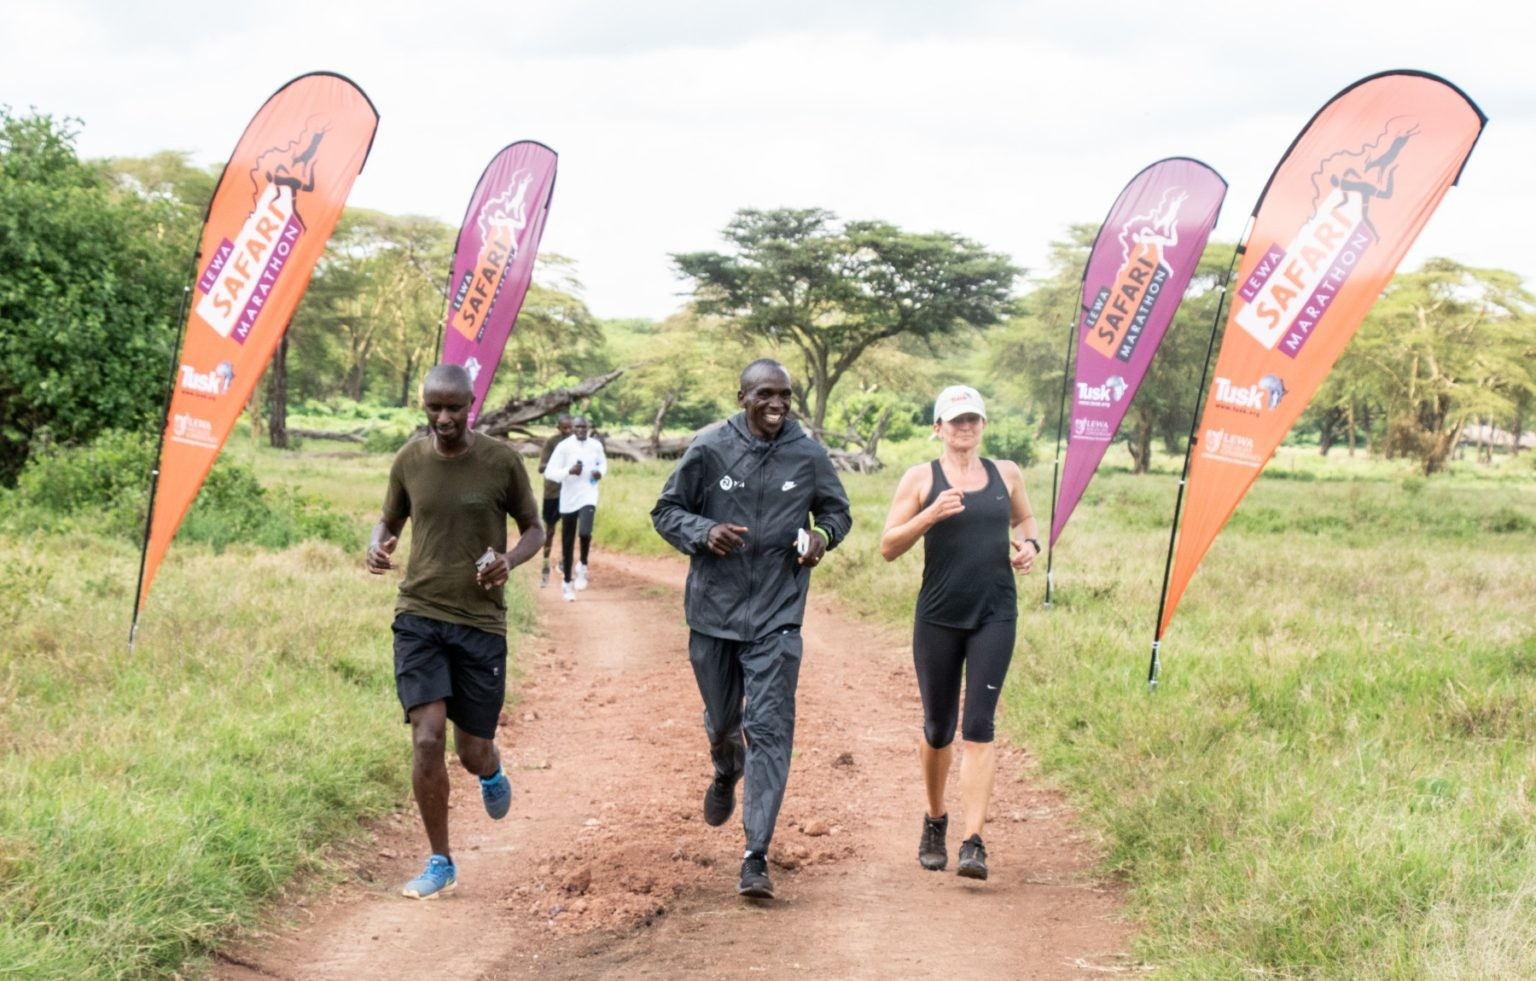 Having been cancelled due to the pandemic, this year's Lewa Safari Marathon will be staged virtually, with Eliud Kipchoge leading the way